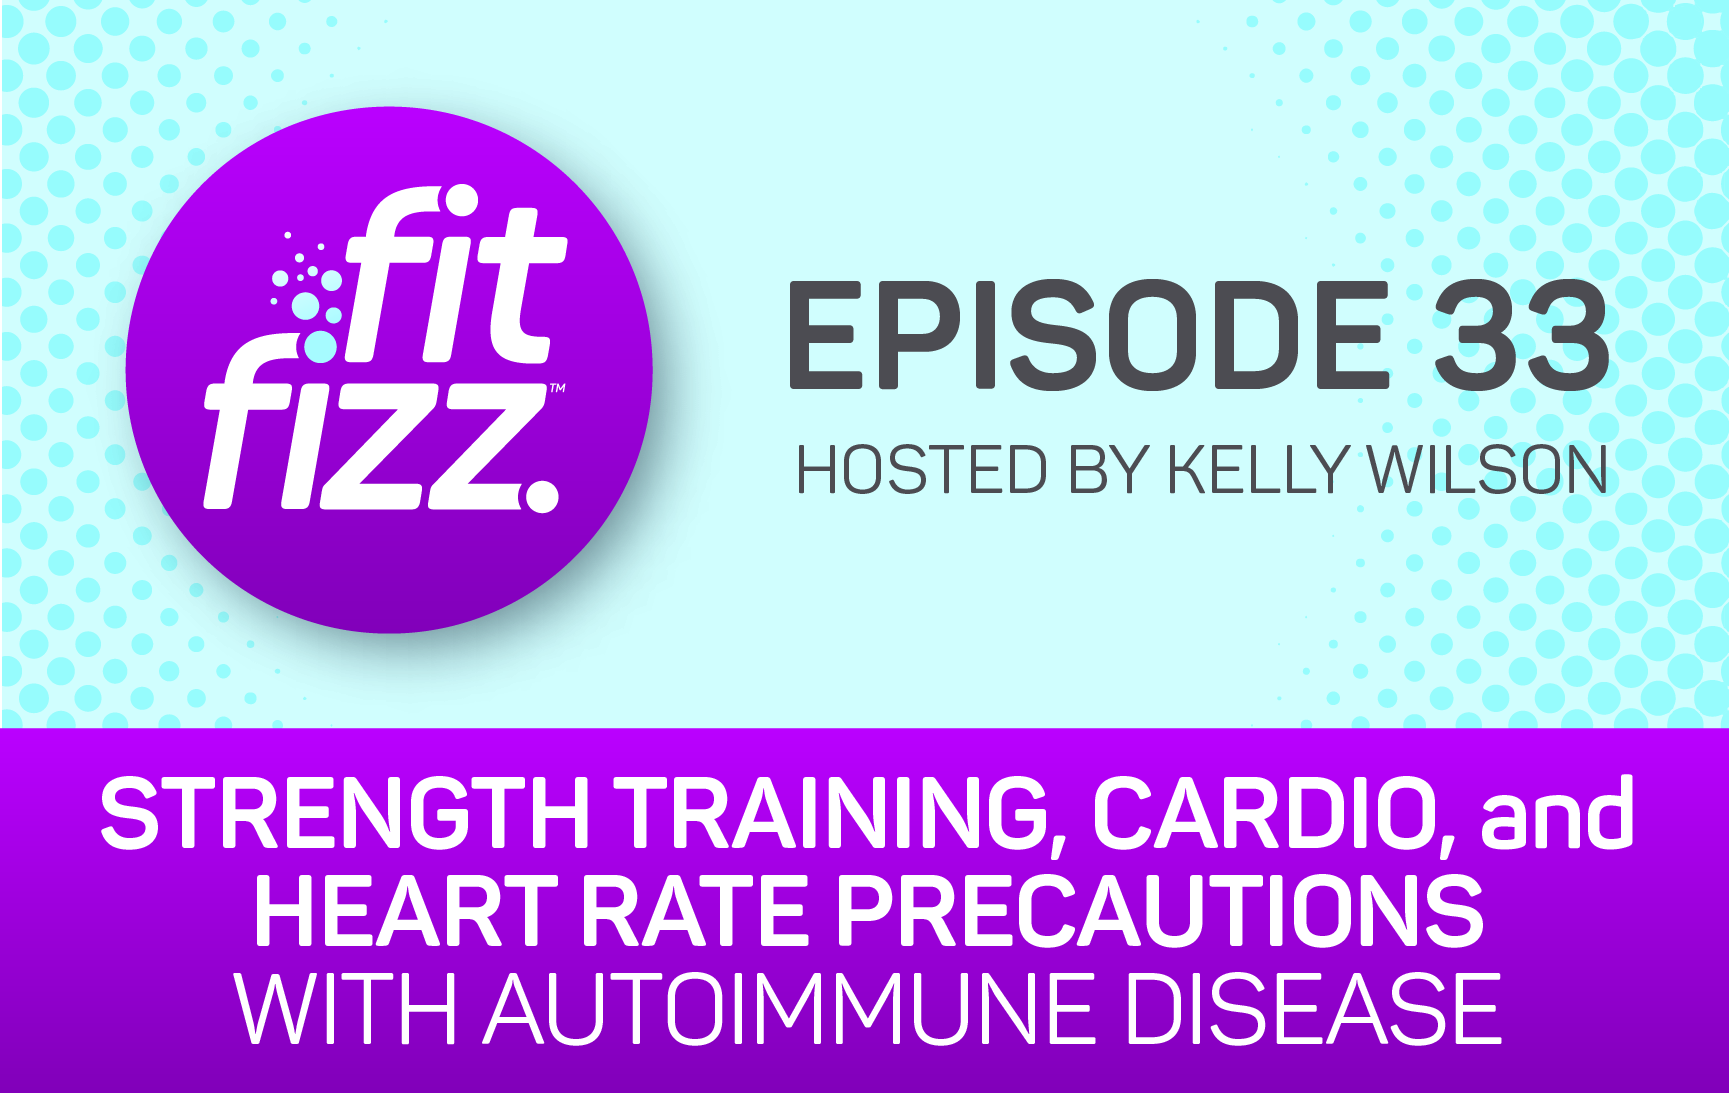 EP. 33: Strength Training, Cardio, and Heart Rate Precautions with Autoimmune Disease